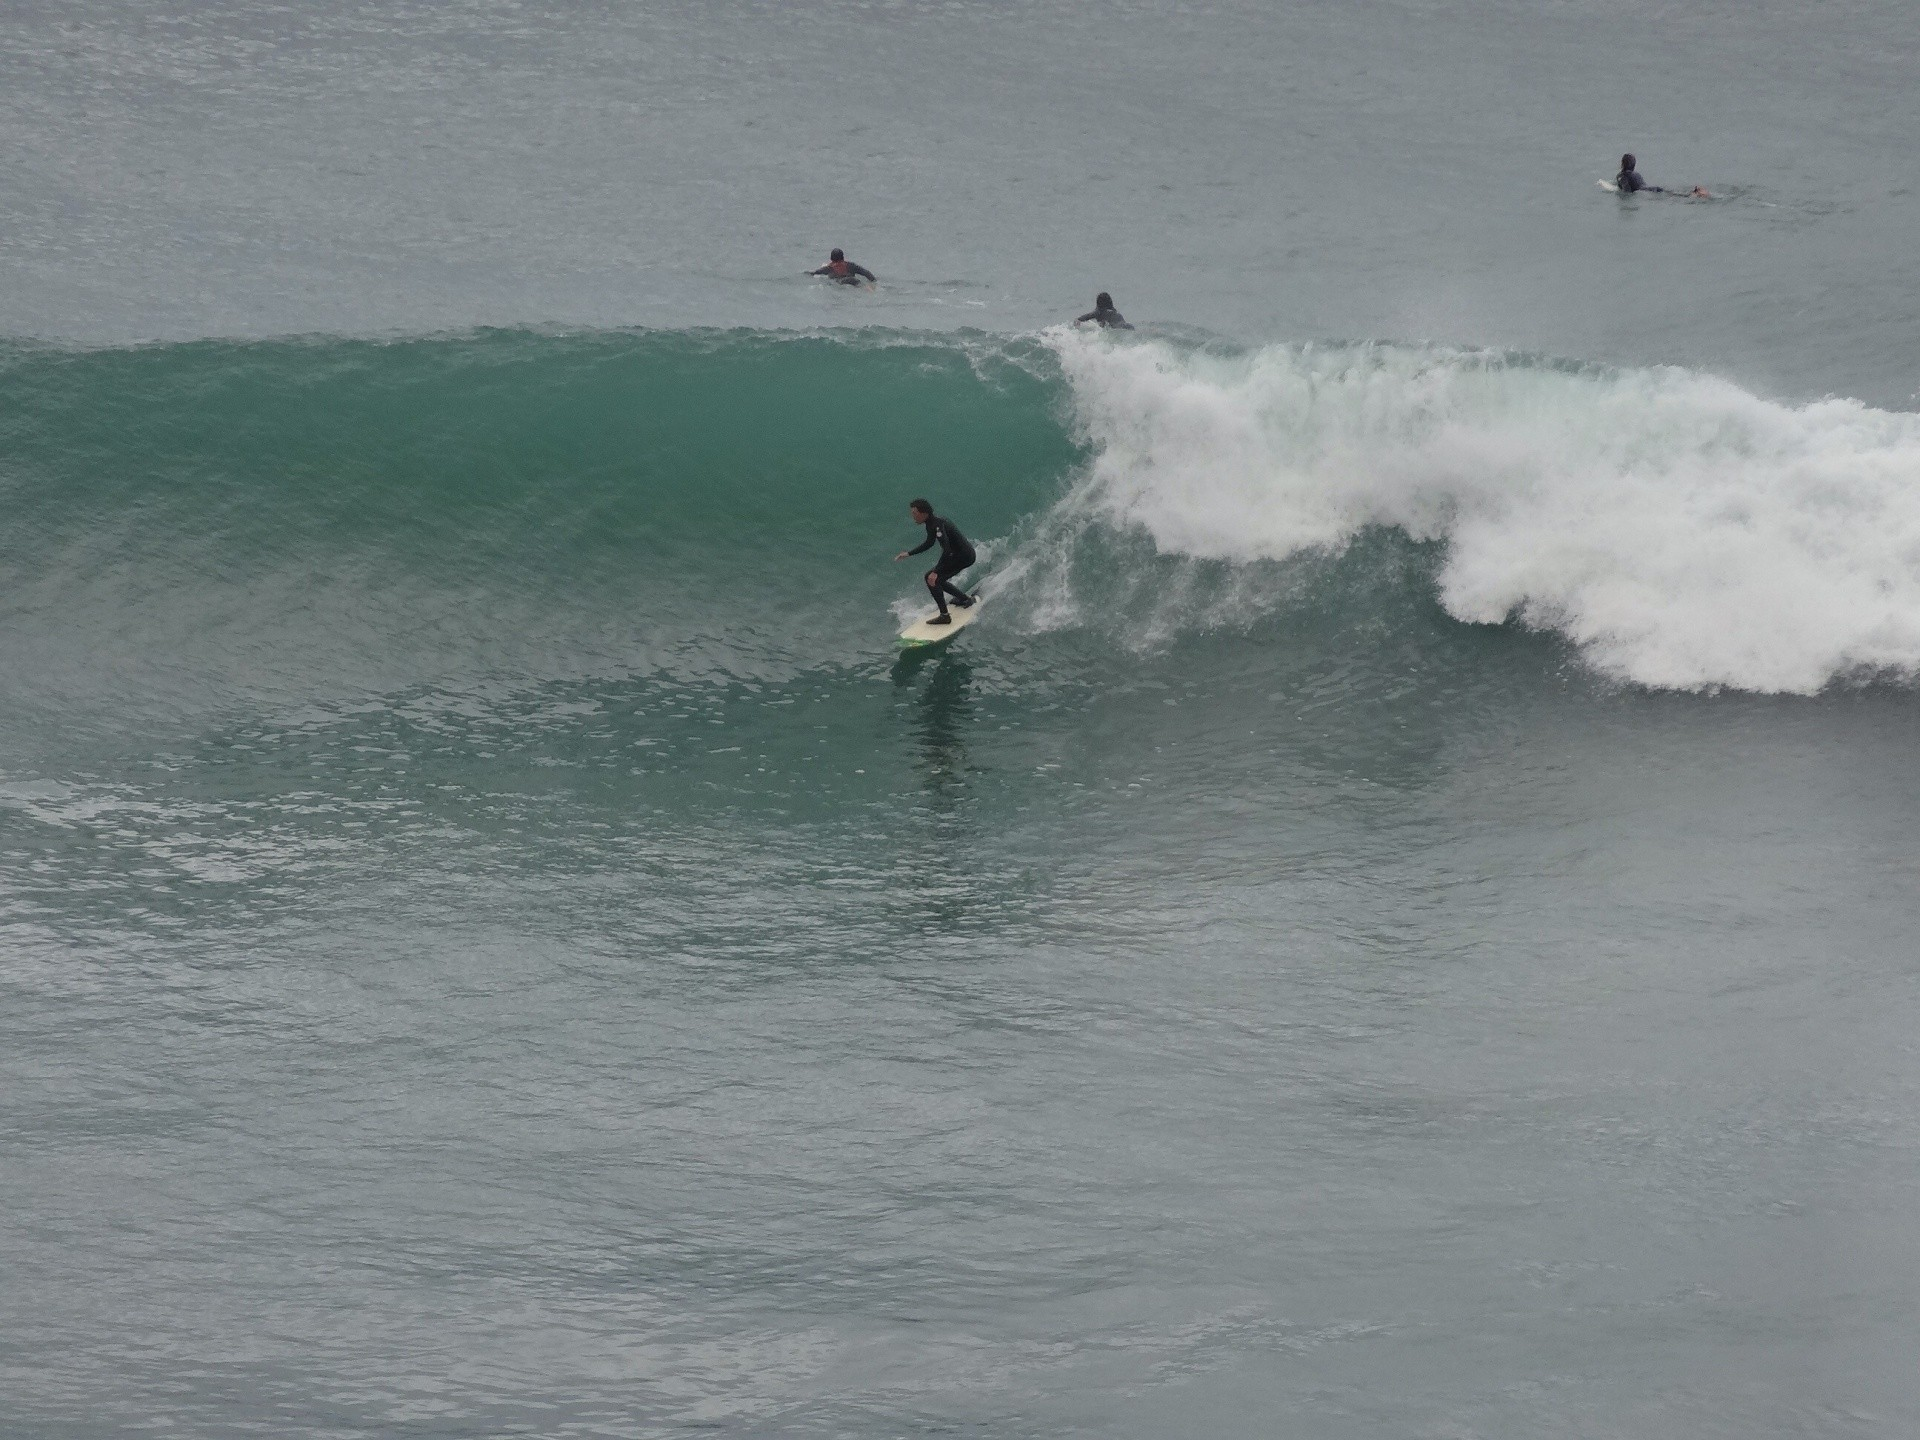 Ian Cowan's photo of Taghazout